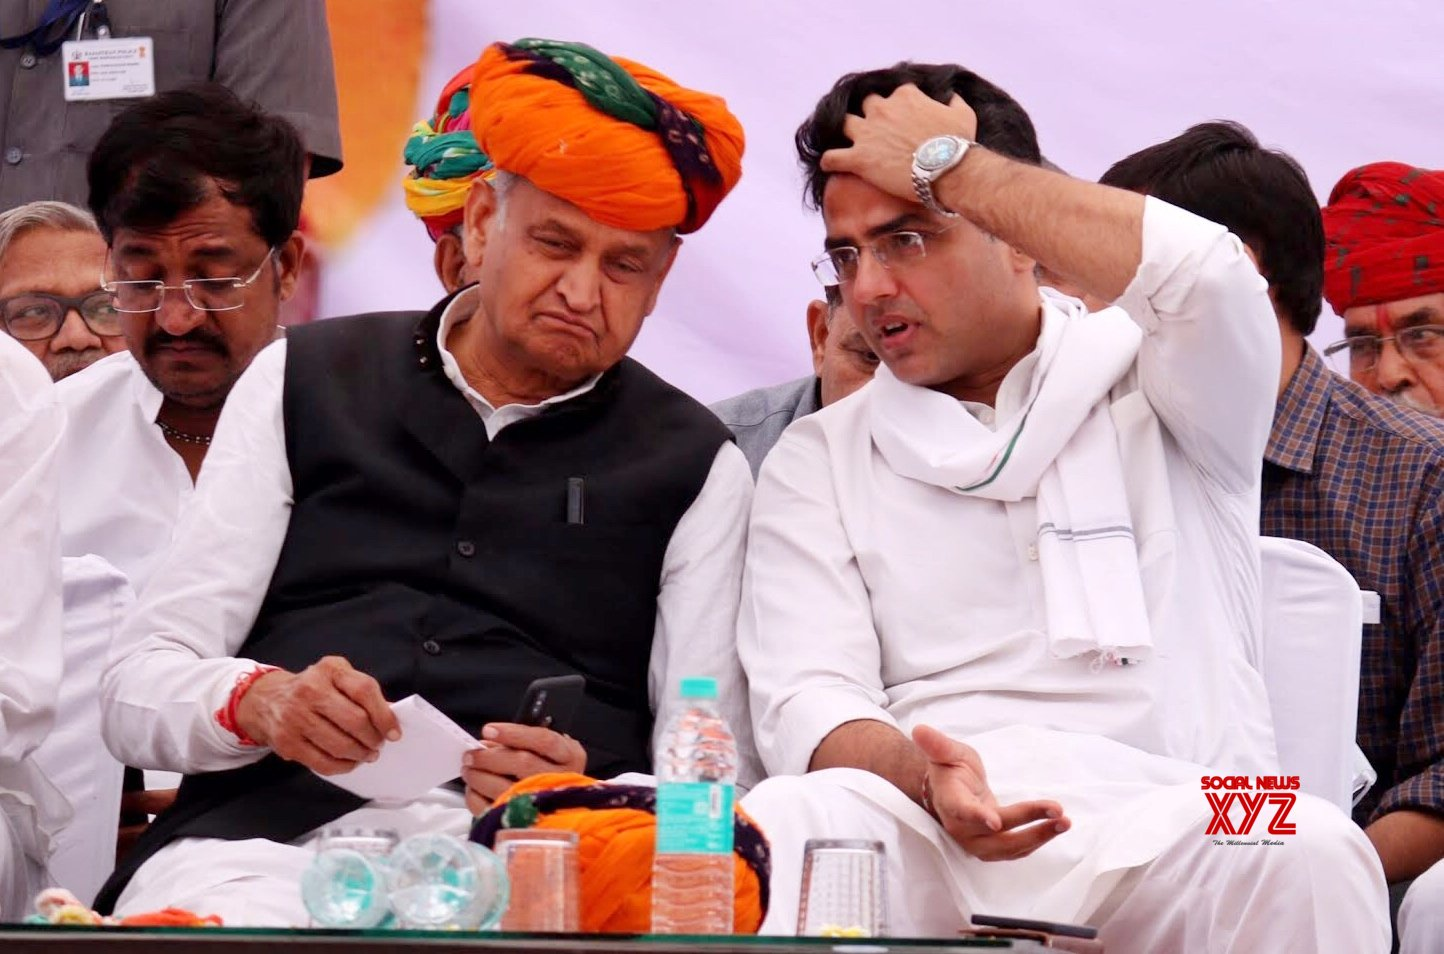 Congress sends emissary for balancing act in Rajasthan